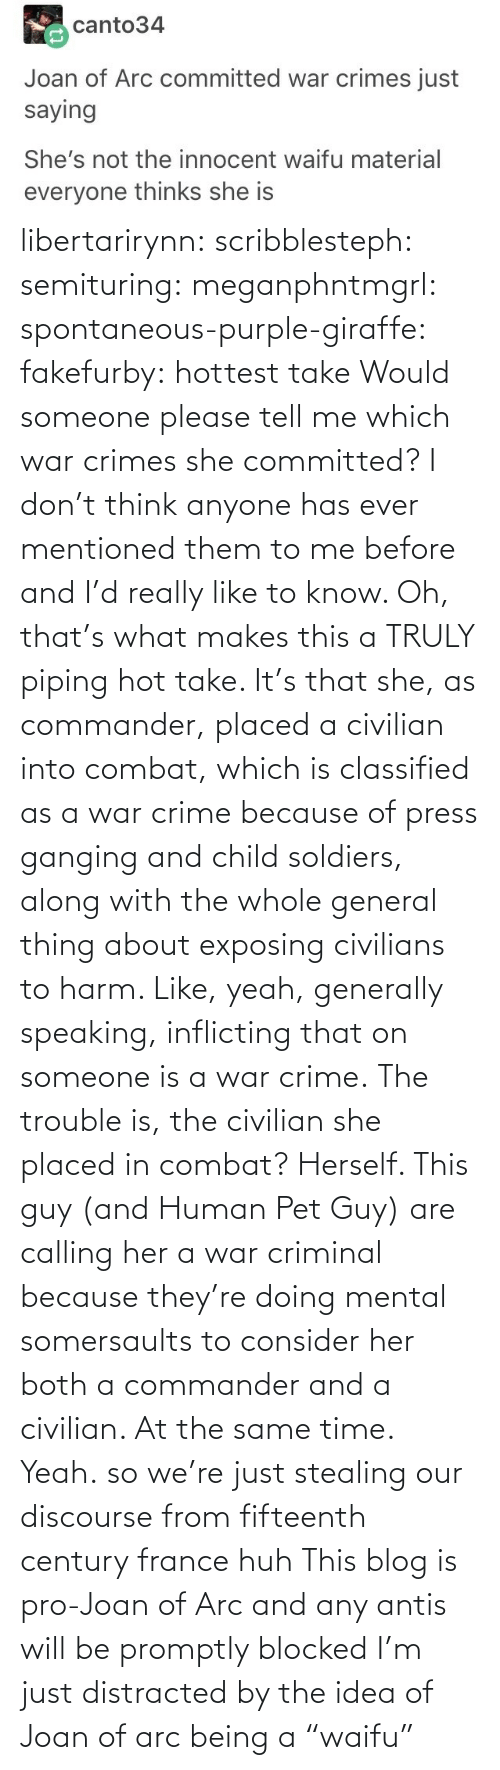 "The Same: libertarirynn: scribblesteph:  semituring:  meganphntmgrl:  spontaneous-purple-giraffe:   fakefurby: hottest take  Would someone please tell me which war crimes she committed? I don't think anyone has ever mentioned them to me before and I'd really like to know.    Oh, that's what makes this a TRULY piping hot take. It's that she, as commander, placed a civilian into combat, which is classified as a war crime because of press ganging and child soldiers, along with the whole general thing about exposing civilians to harm. Like, yeah, generally speaking, inflicting that on someone is a war crime. The trouble is, the civilian she placed in combat? Herself.  This guy (and Human Pet Guy) are calling her a war criminal because they're doing mental somersaults to consider her both a commander and a civilian. At the same time.  Yeah.  so we're just stealing our discourse from fifteenth century france huh   This blog is pro-Joan of Arc and any antis will be promptly blocked   I'm just distracted by the idea of Joan of arc being a ""waifu"""